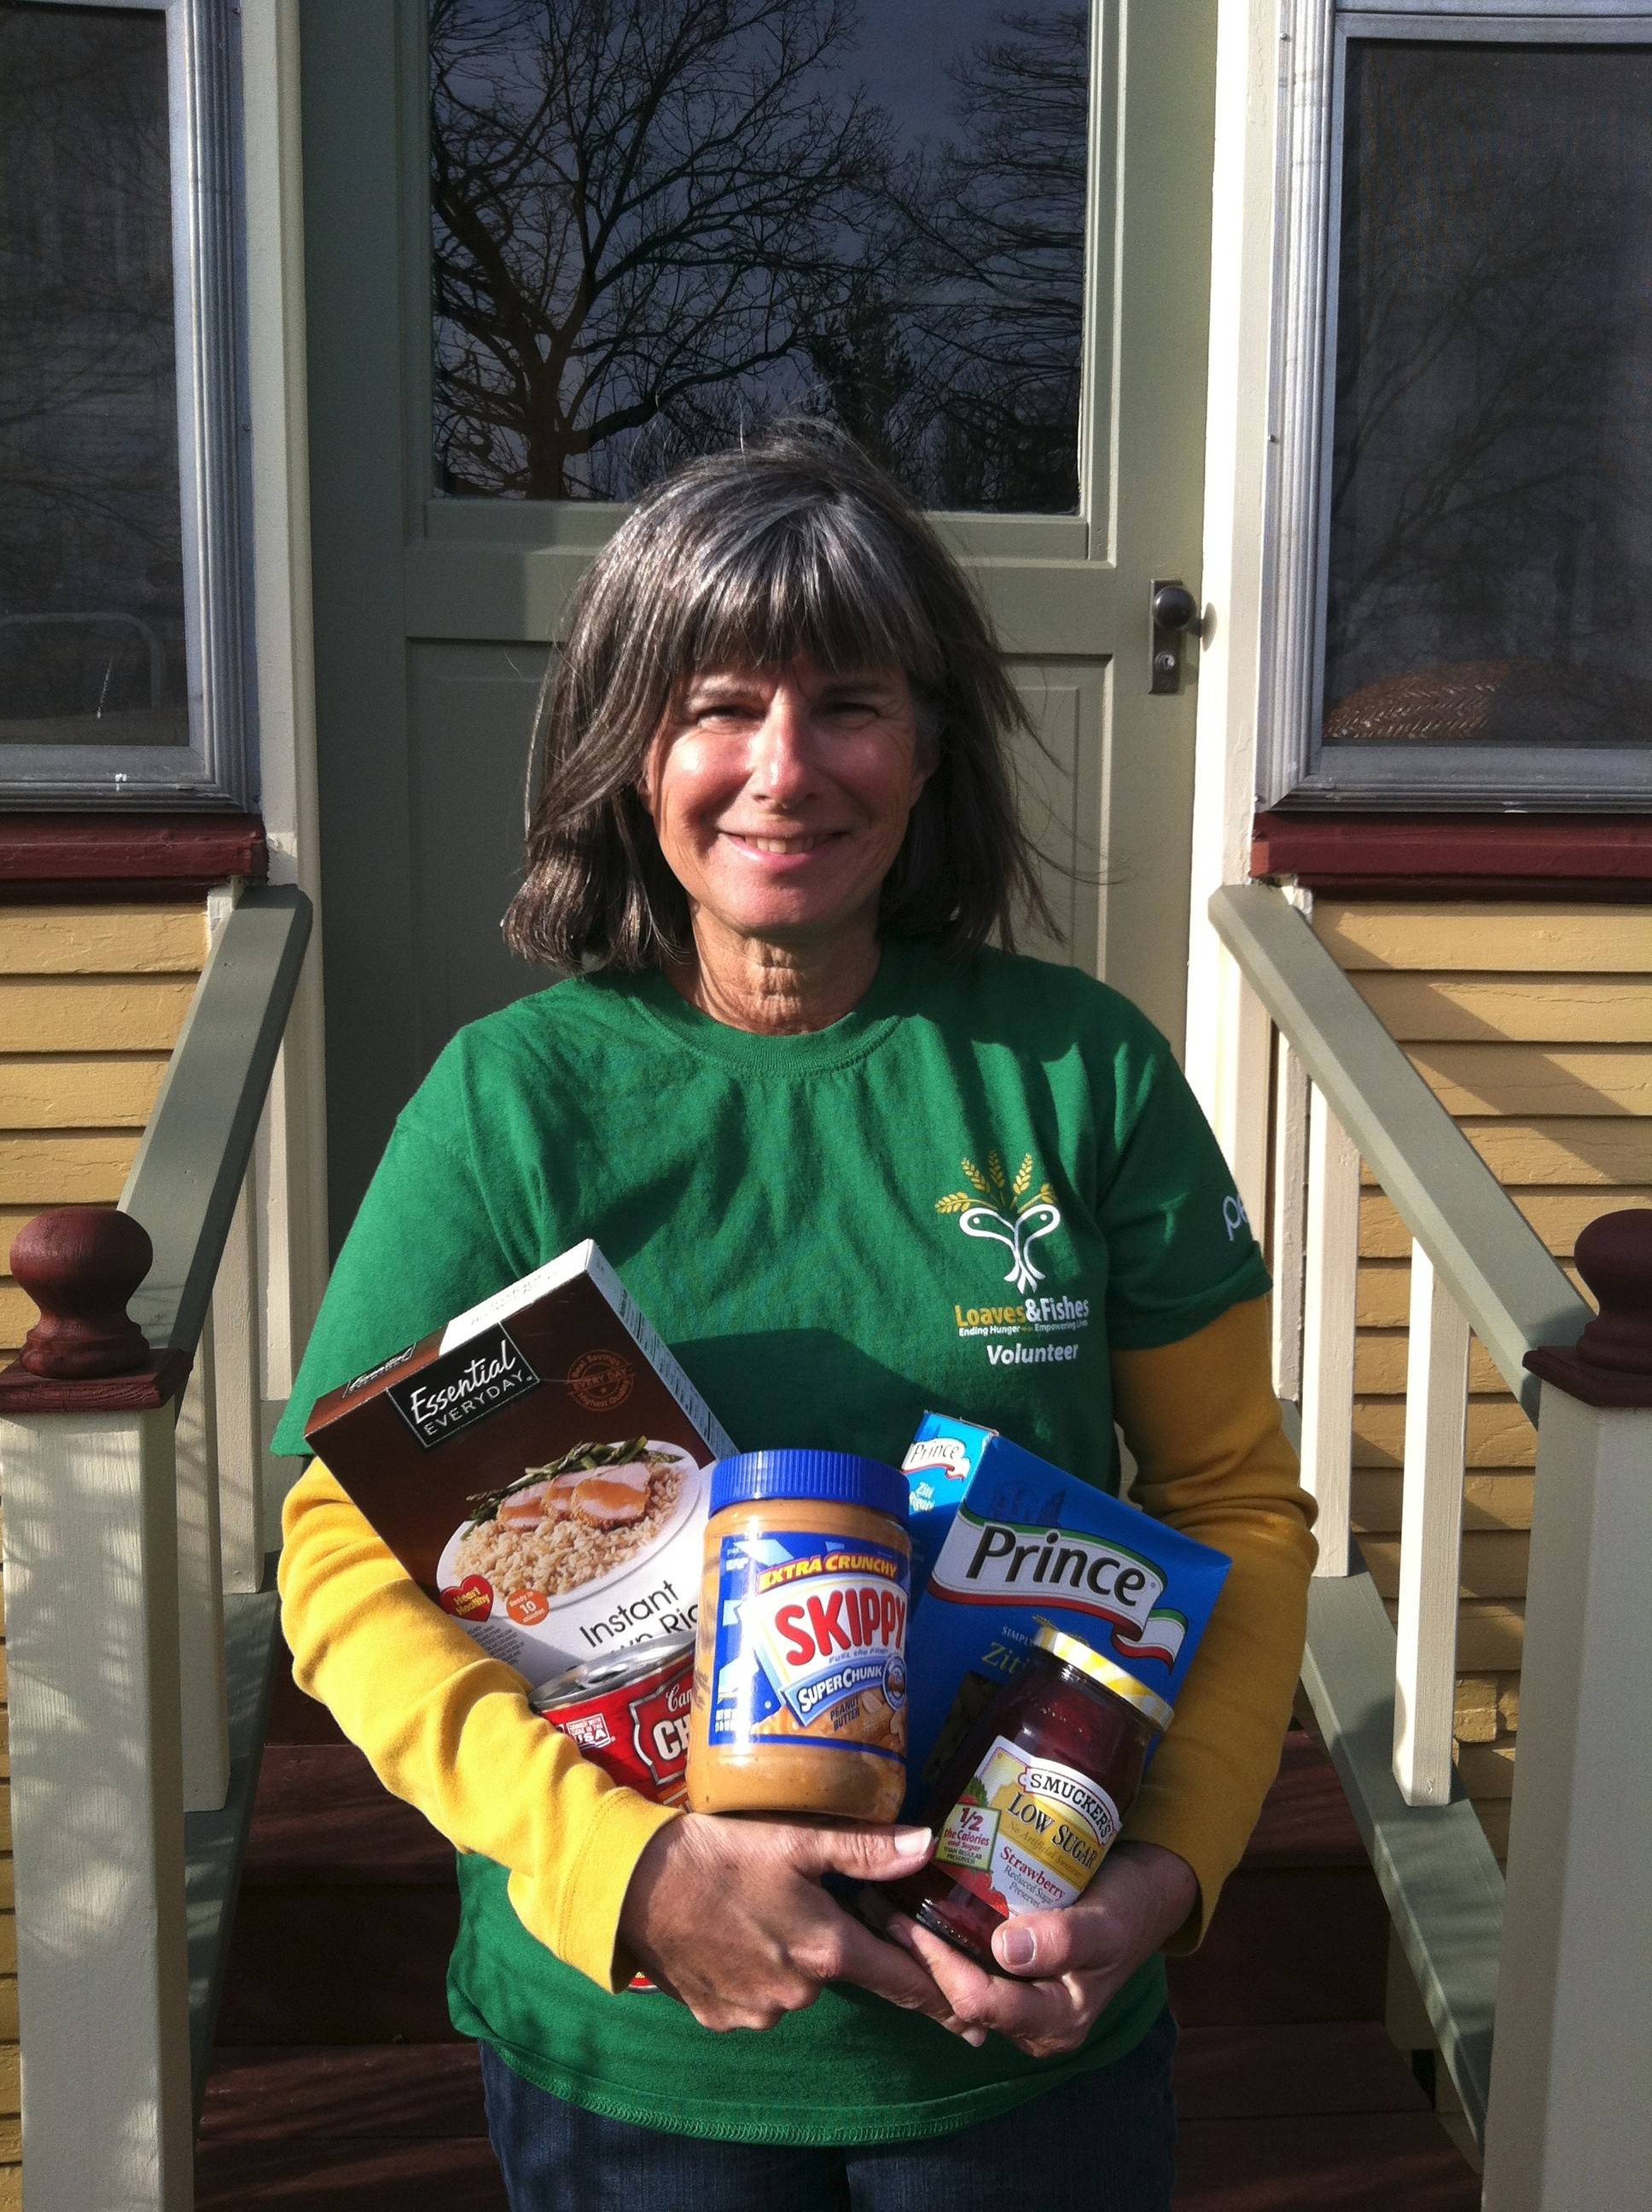 Susan McNeal-Bulak of Naperville volunteers at Loaves and Fishes Community Pantry. She'll raise money for the pantry by joining in the Human Race organized by Giving DuPage.